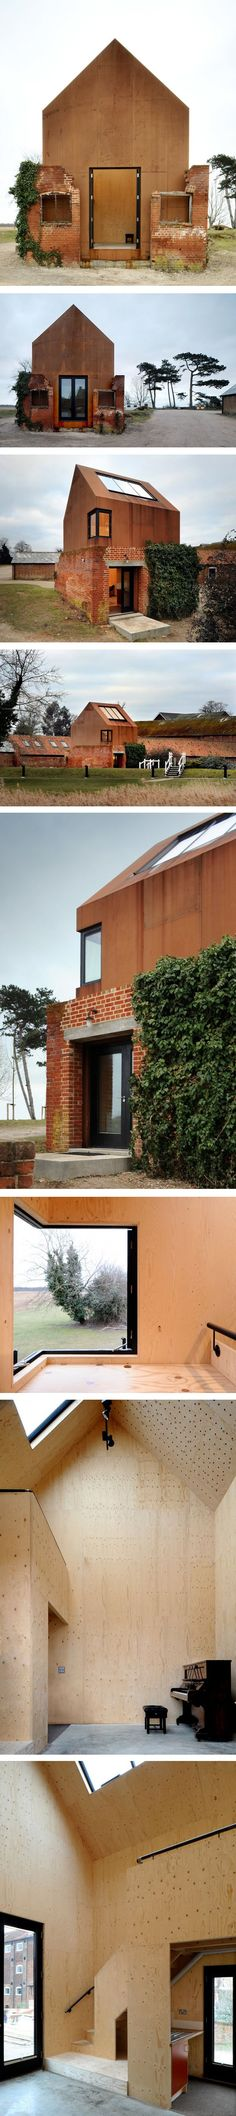 Dovecote Studio by Haworth Tompkins Architecture in Suffolk (U.K)